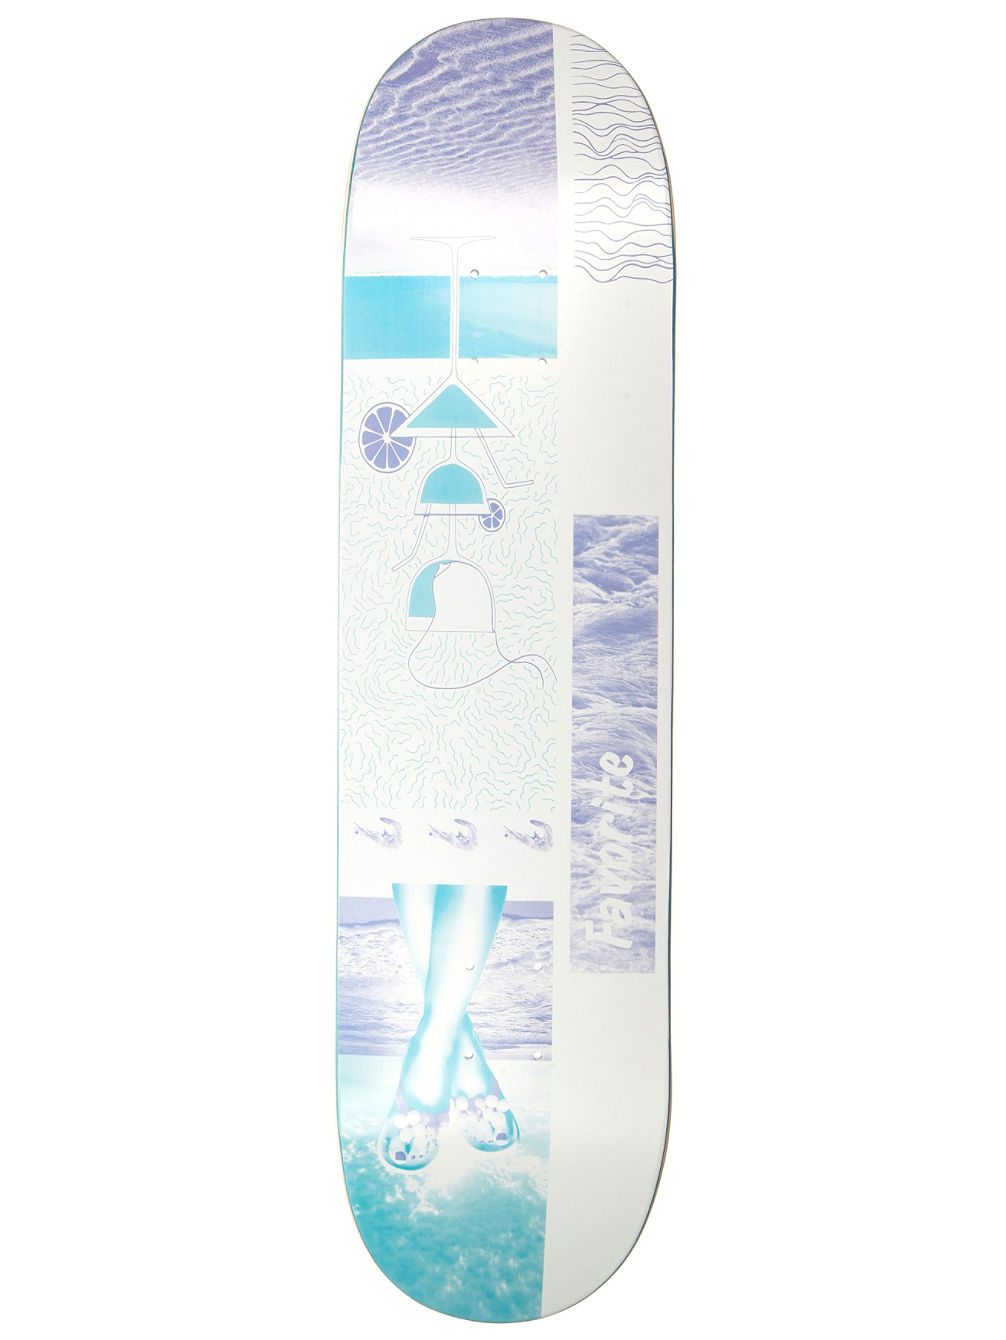 "East Beach 8.0"" Skate Deck"